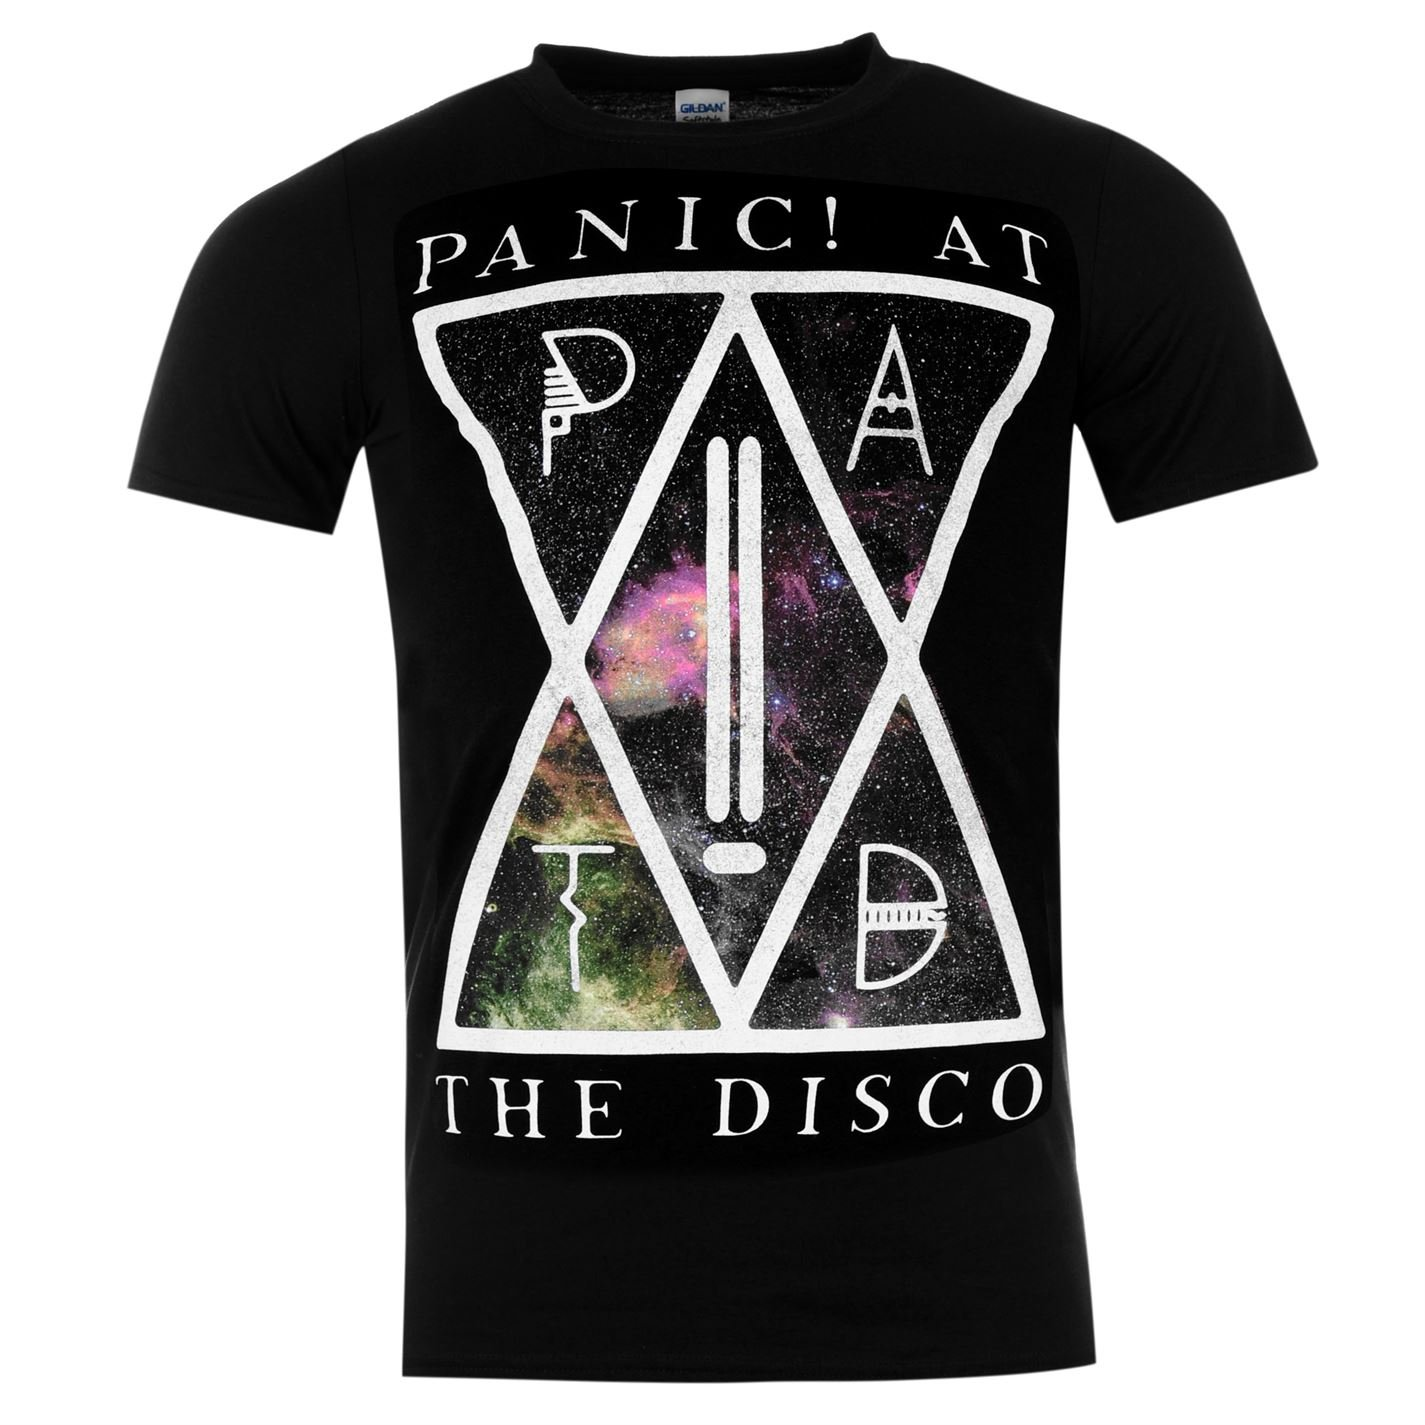 0c092b4d35 Amazon.com: Official Mens Band Merch Panic at The Disco T Shirt Short  Sleeve Crew Neck Tee PATD Small: Clothing